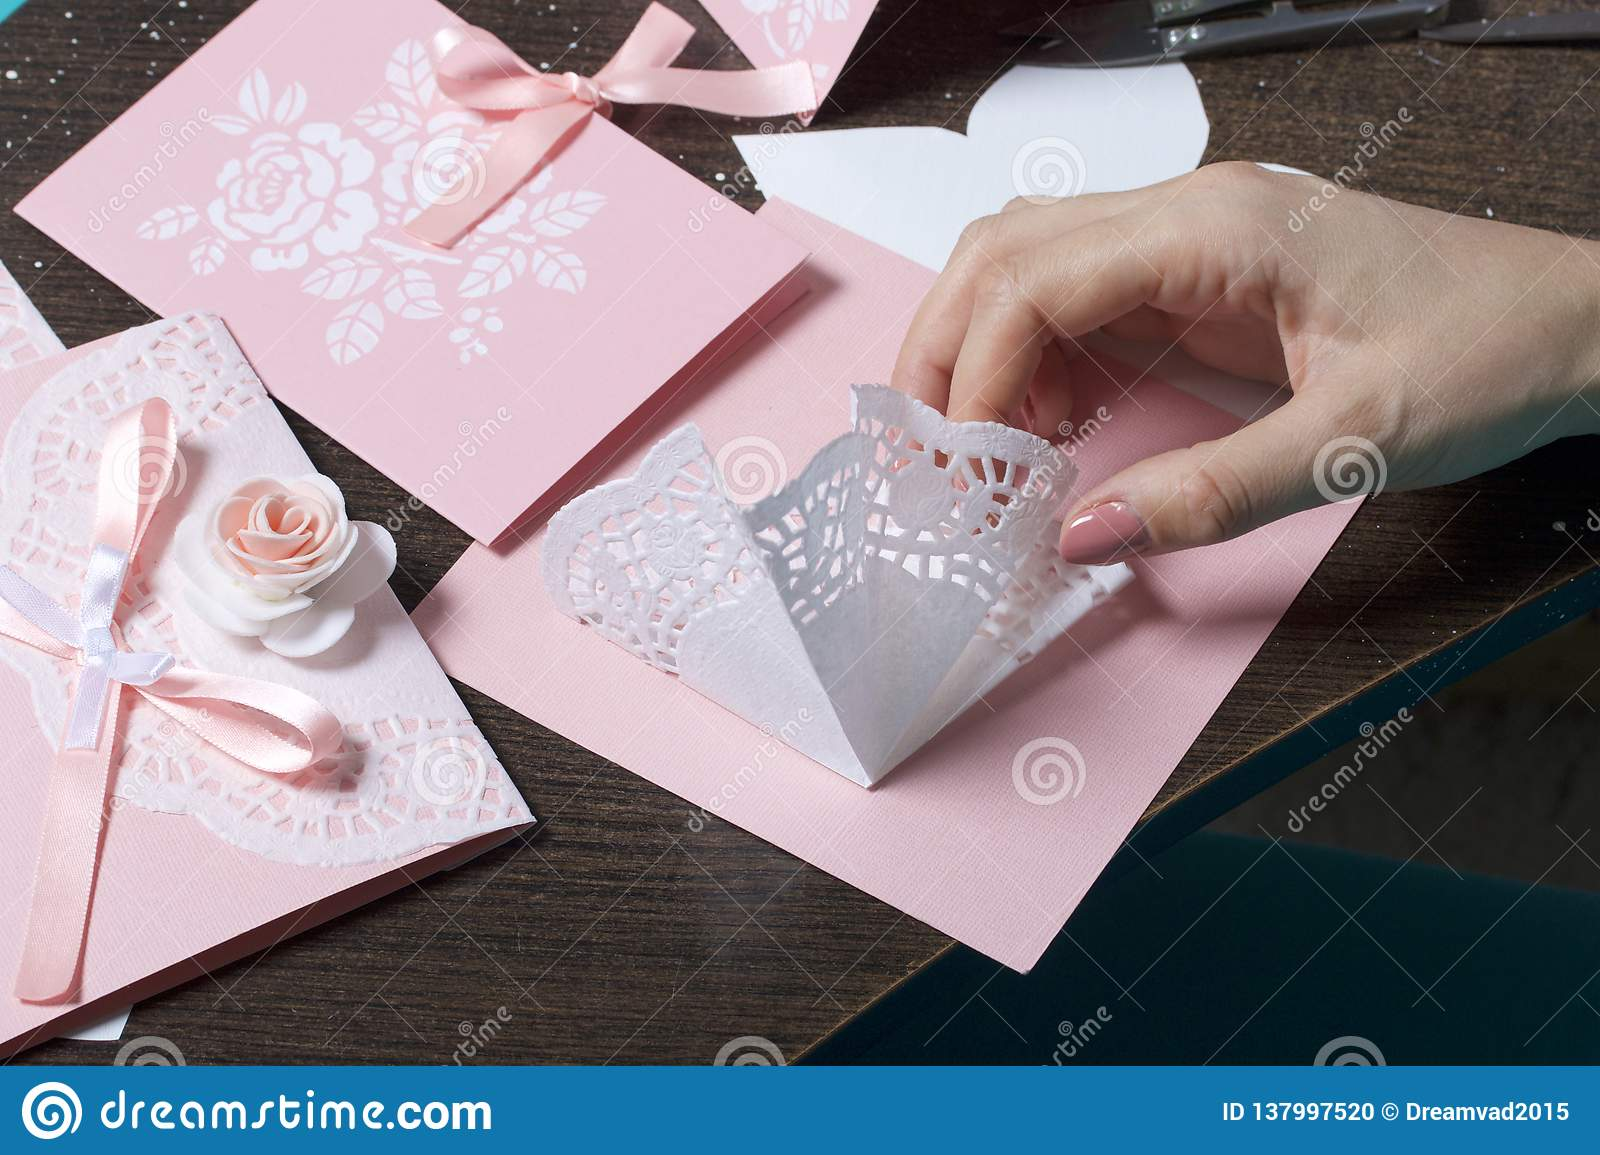 Surprising Making Greeting Cards From Paper Cardboard And Tape Stock Photo Funny Birthday Cards Online Inifofree Goldxyz